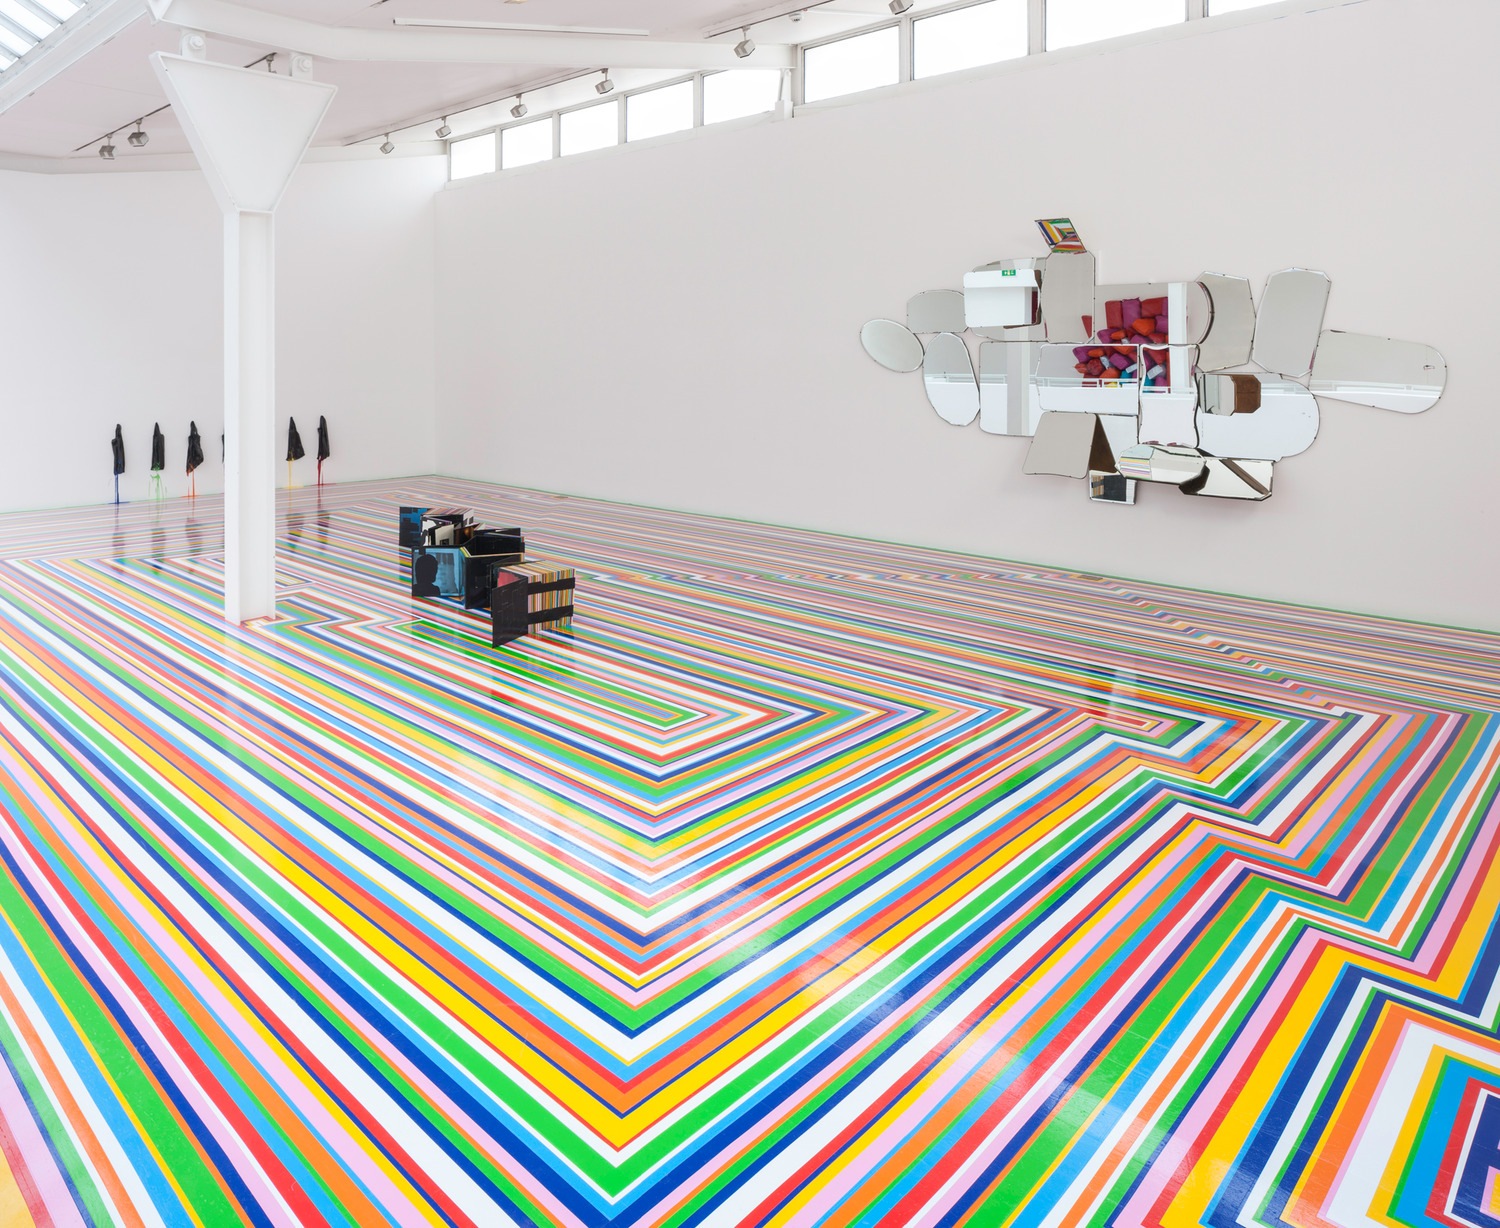 Installation view, Fruitmarket Gallery, Edinburgh, 2014